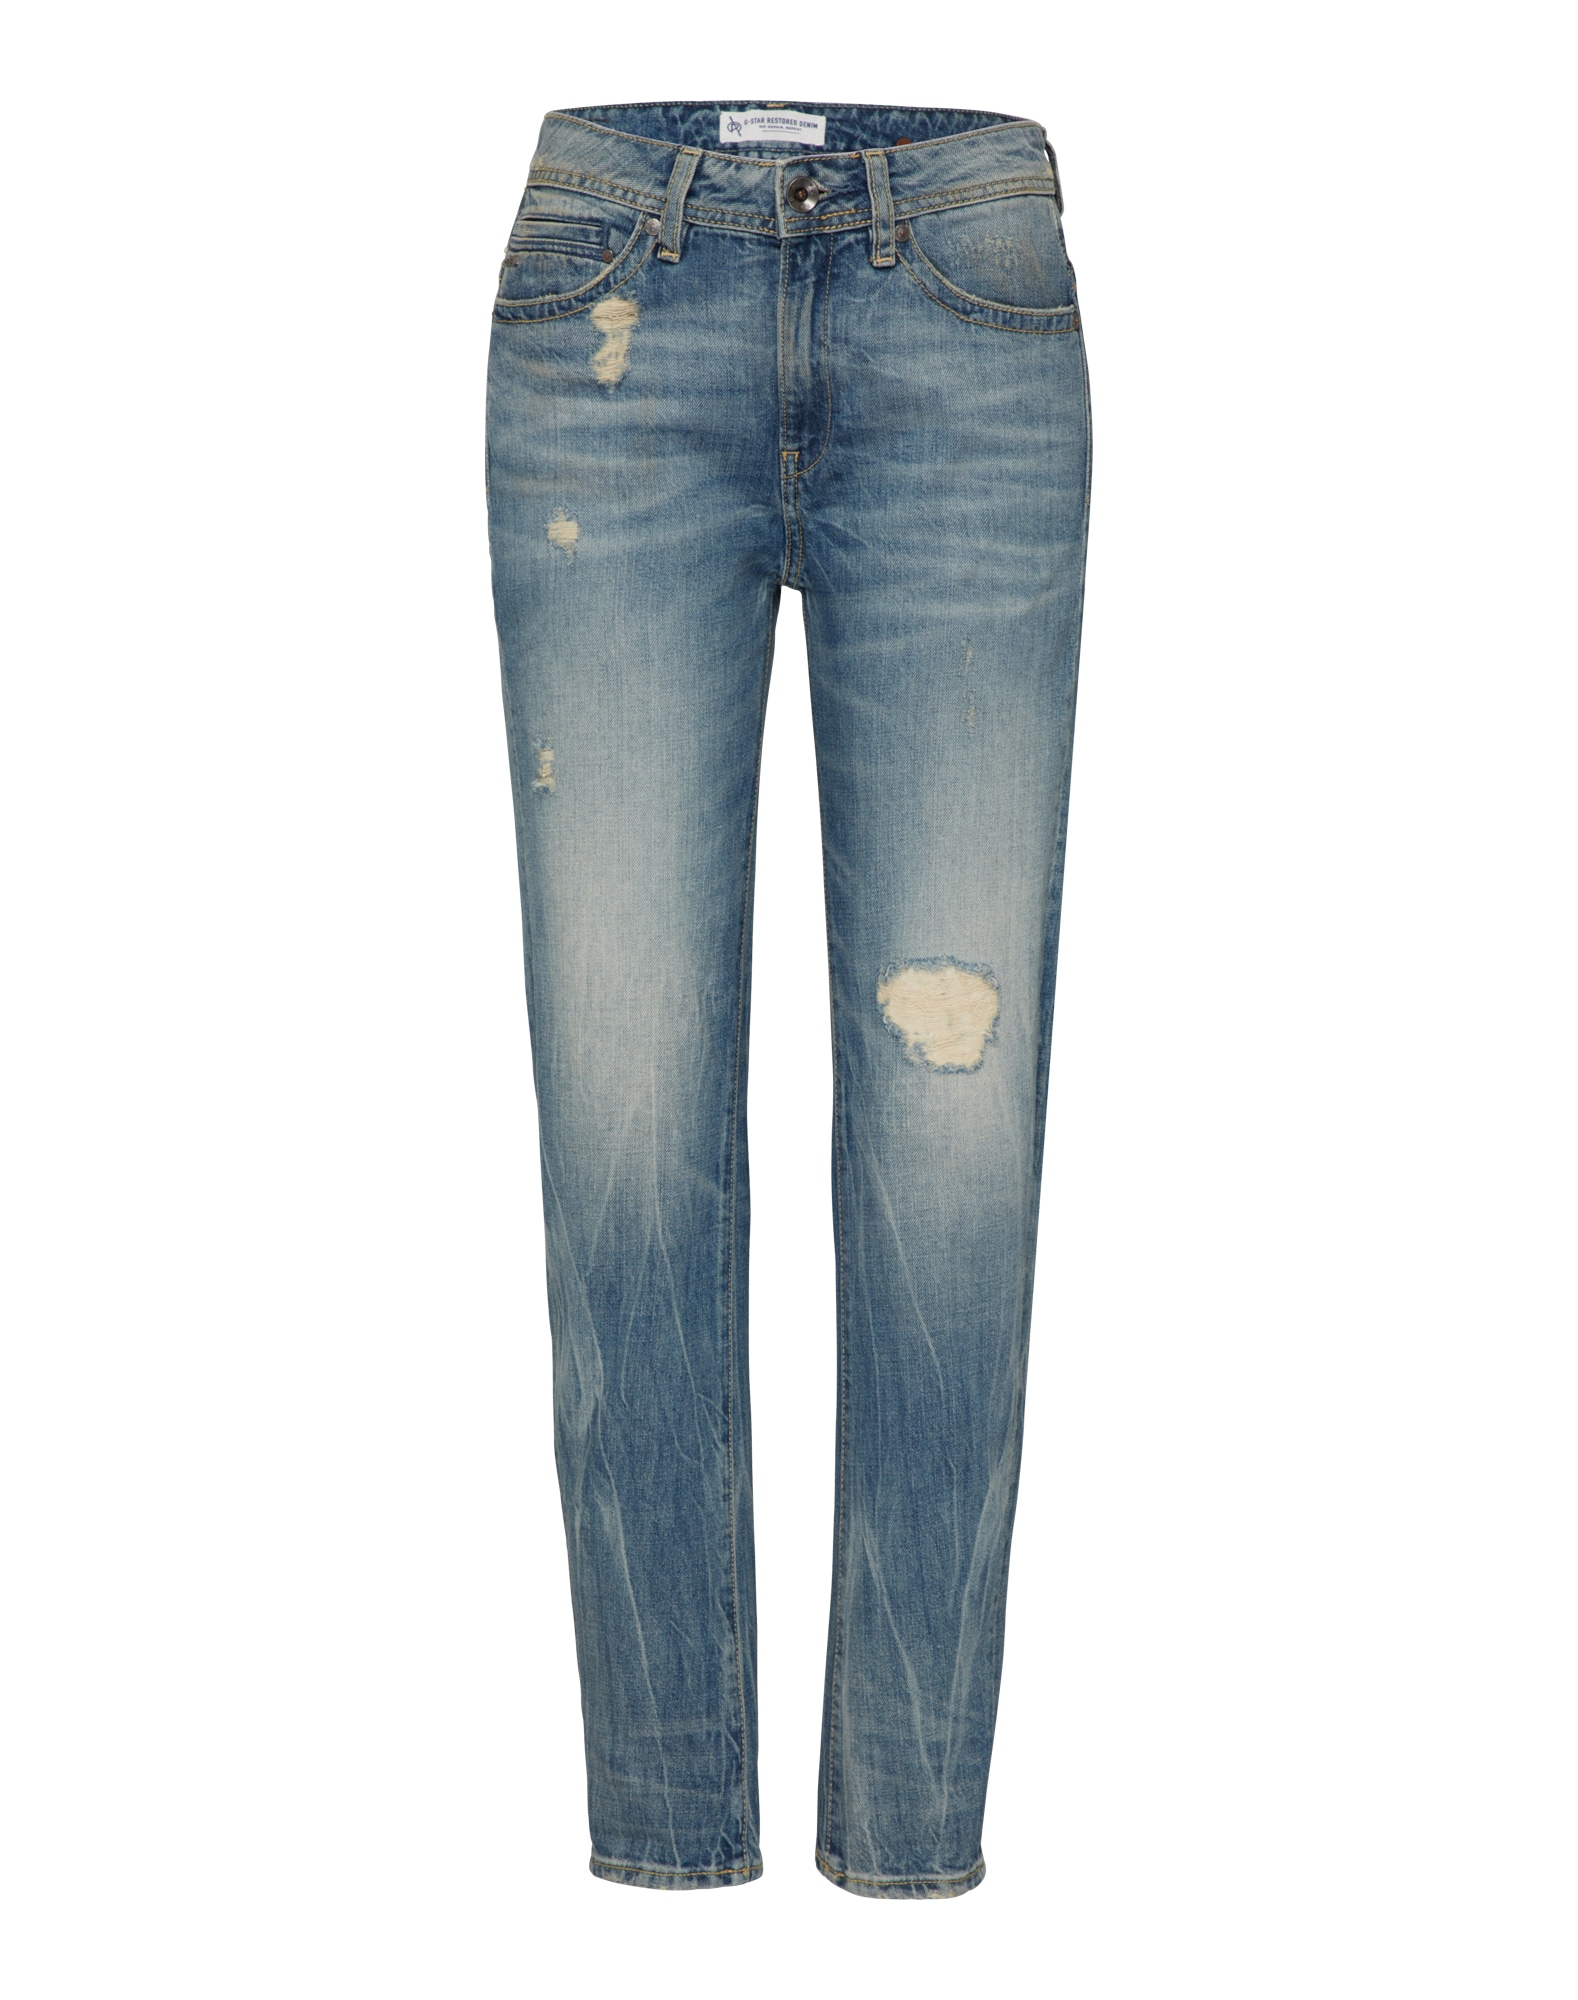 G-STAR RAW Dames Jeans Midge Saddle blue denim